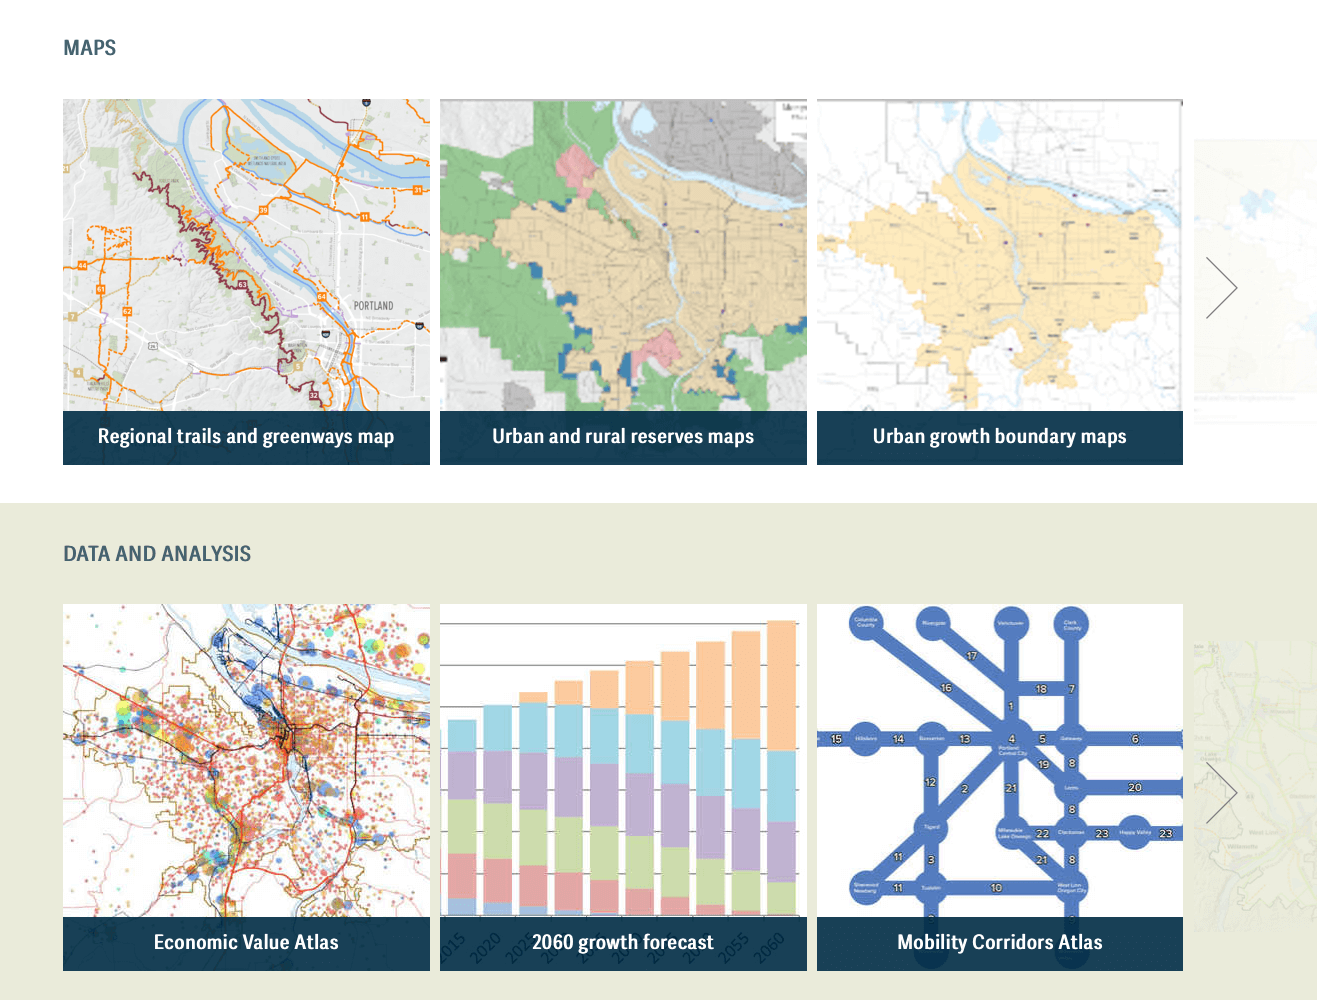 Elements of Metro website's maps and data analysis features